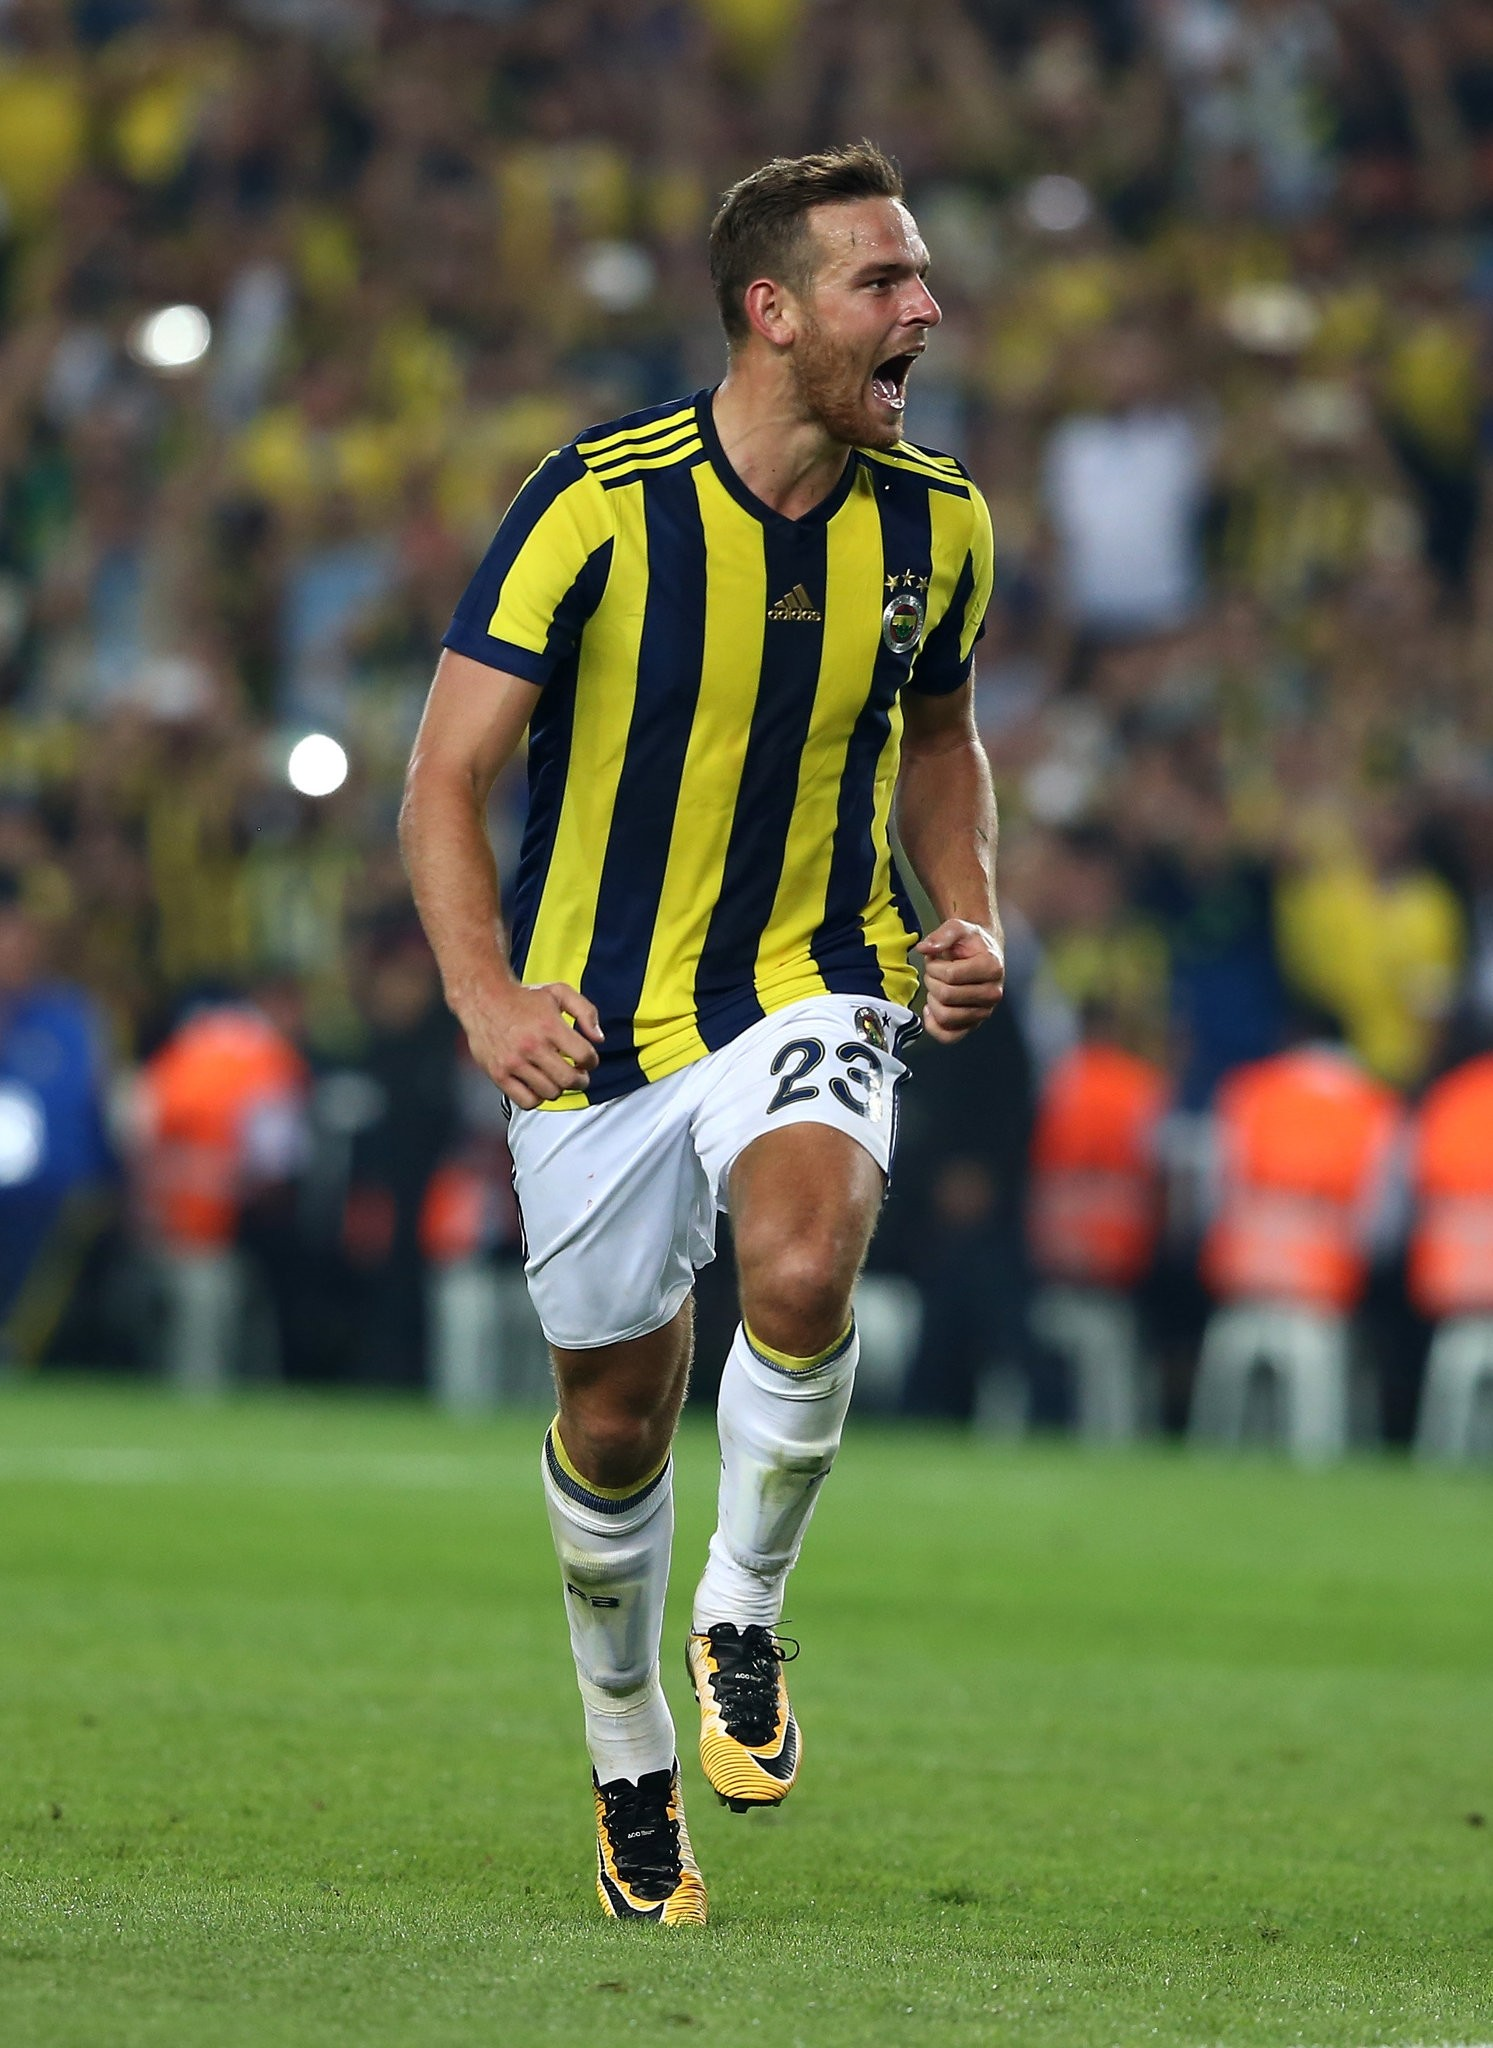 With two goals so far this season, Vincent Janssen may lead the Fenerbahu00e7e attack against Demir Grup Sivasspor.